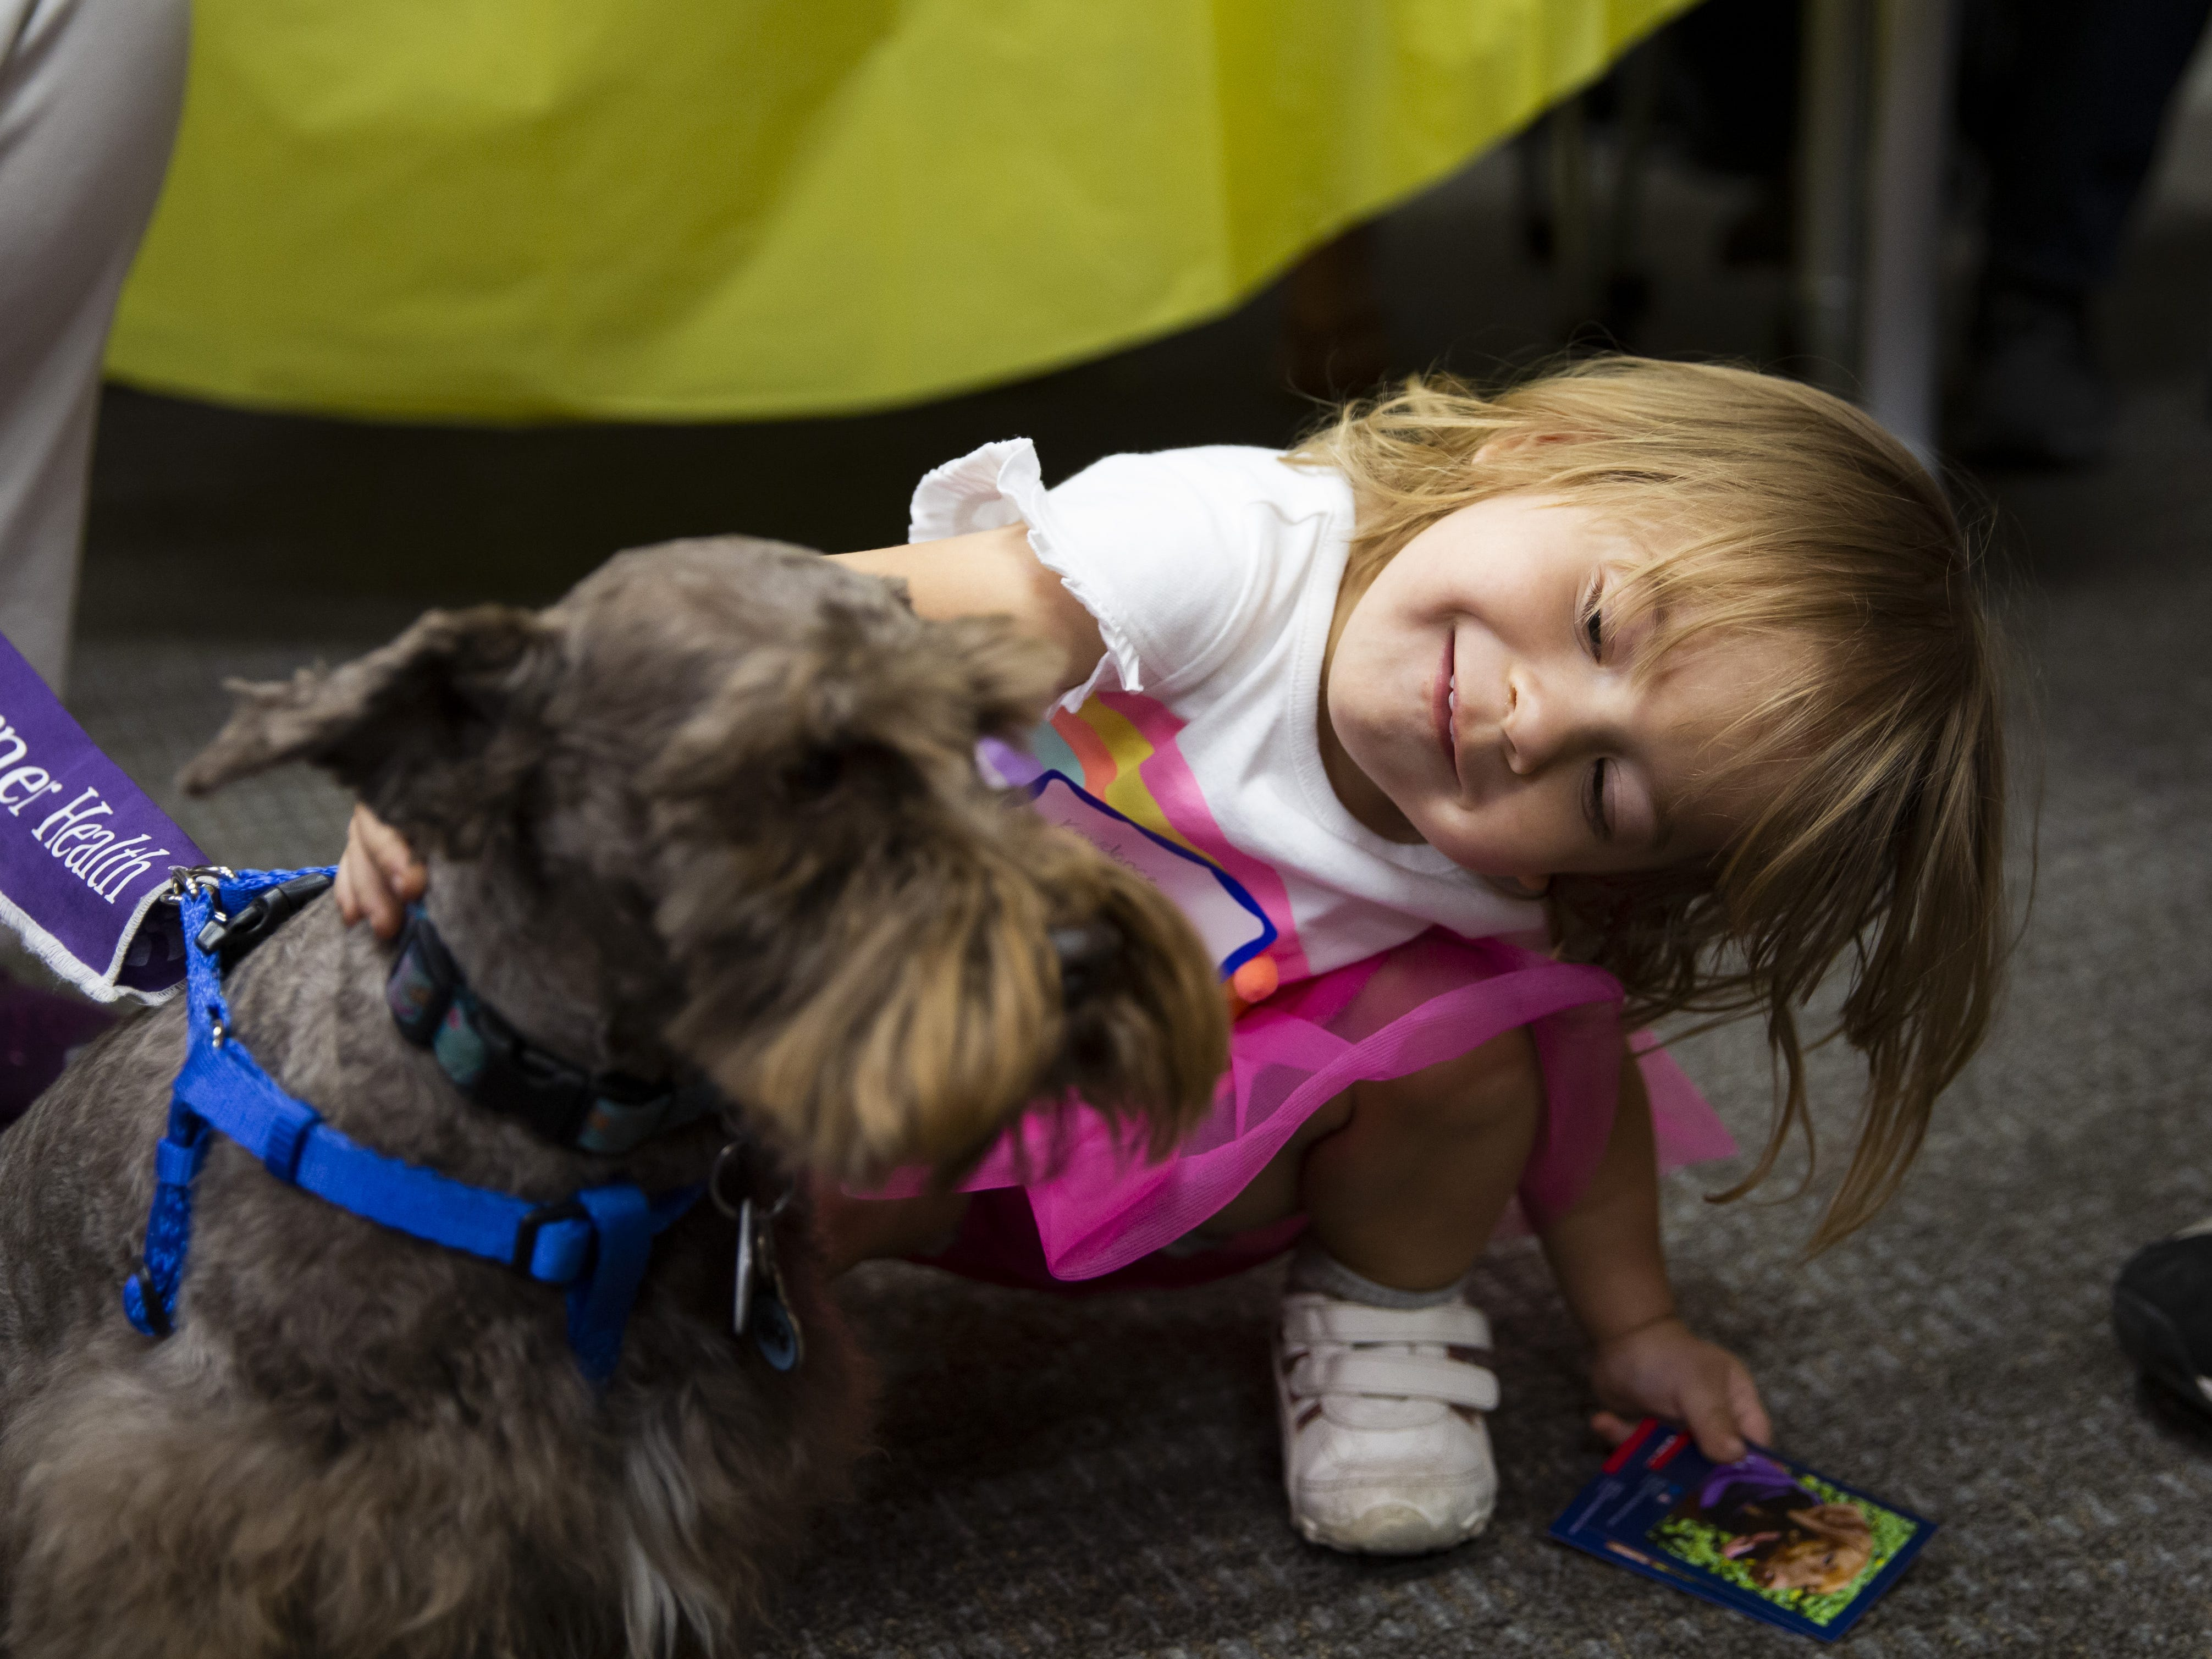 Kaydance Grimes, 2, pets a dog during the Preemie NICU Reunion at Banner University Medical Center on April 13, 2019.